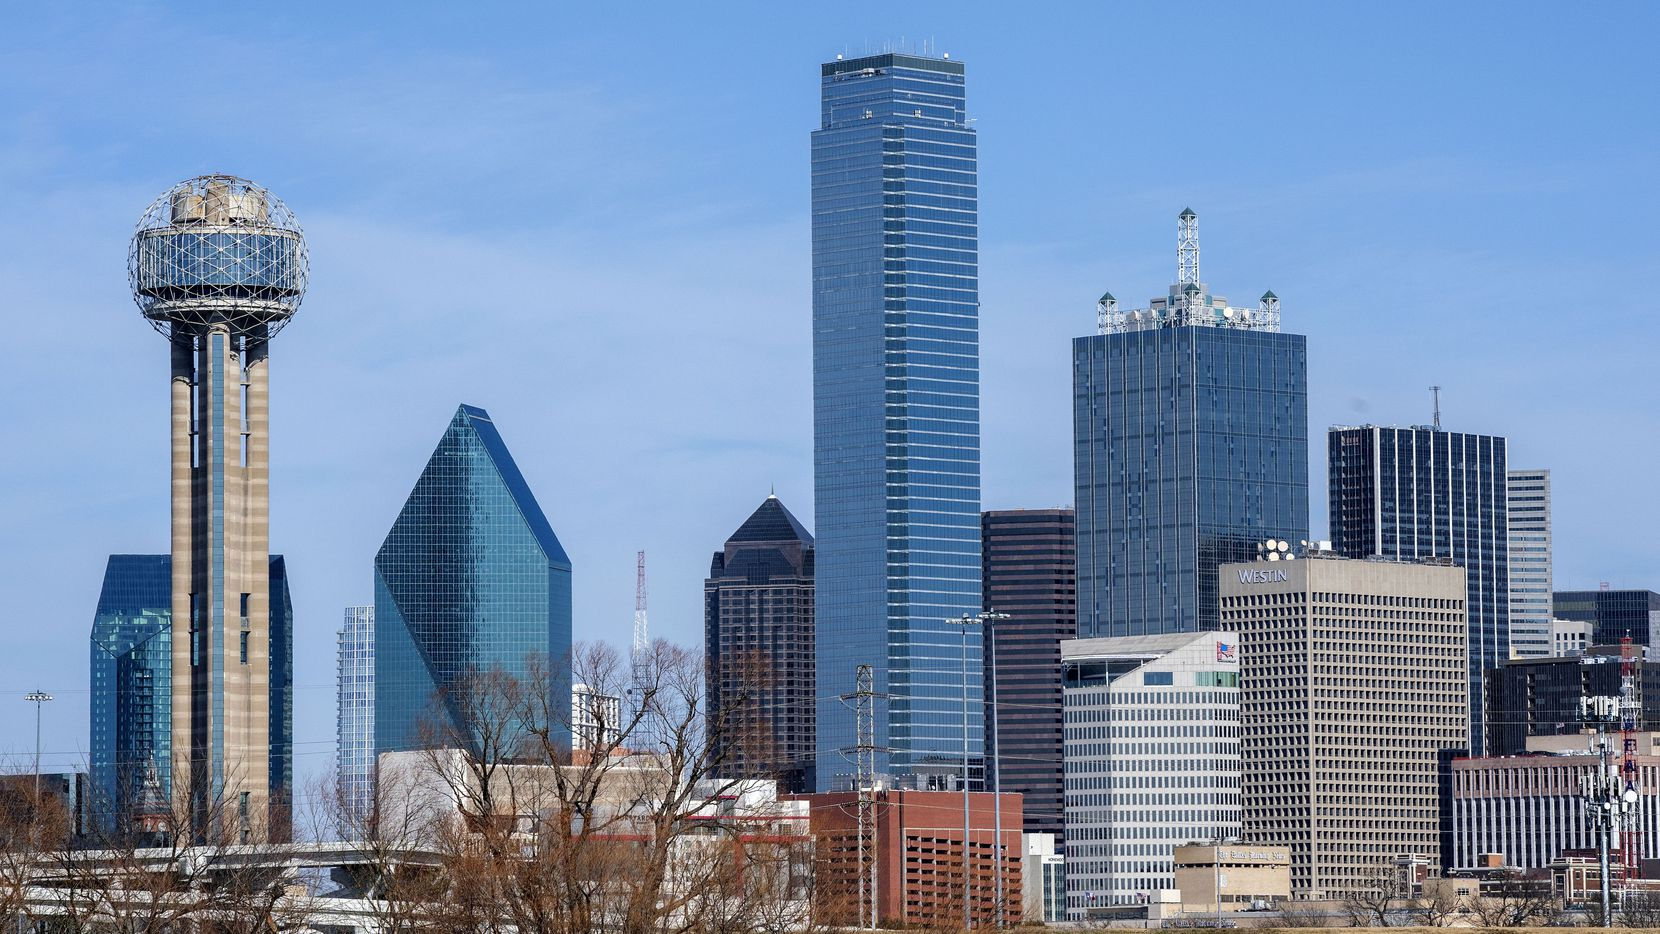 Renaissance Tower (right) stands next to Bank of America Plaza (center) on the Dallas skyline.